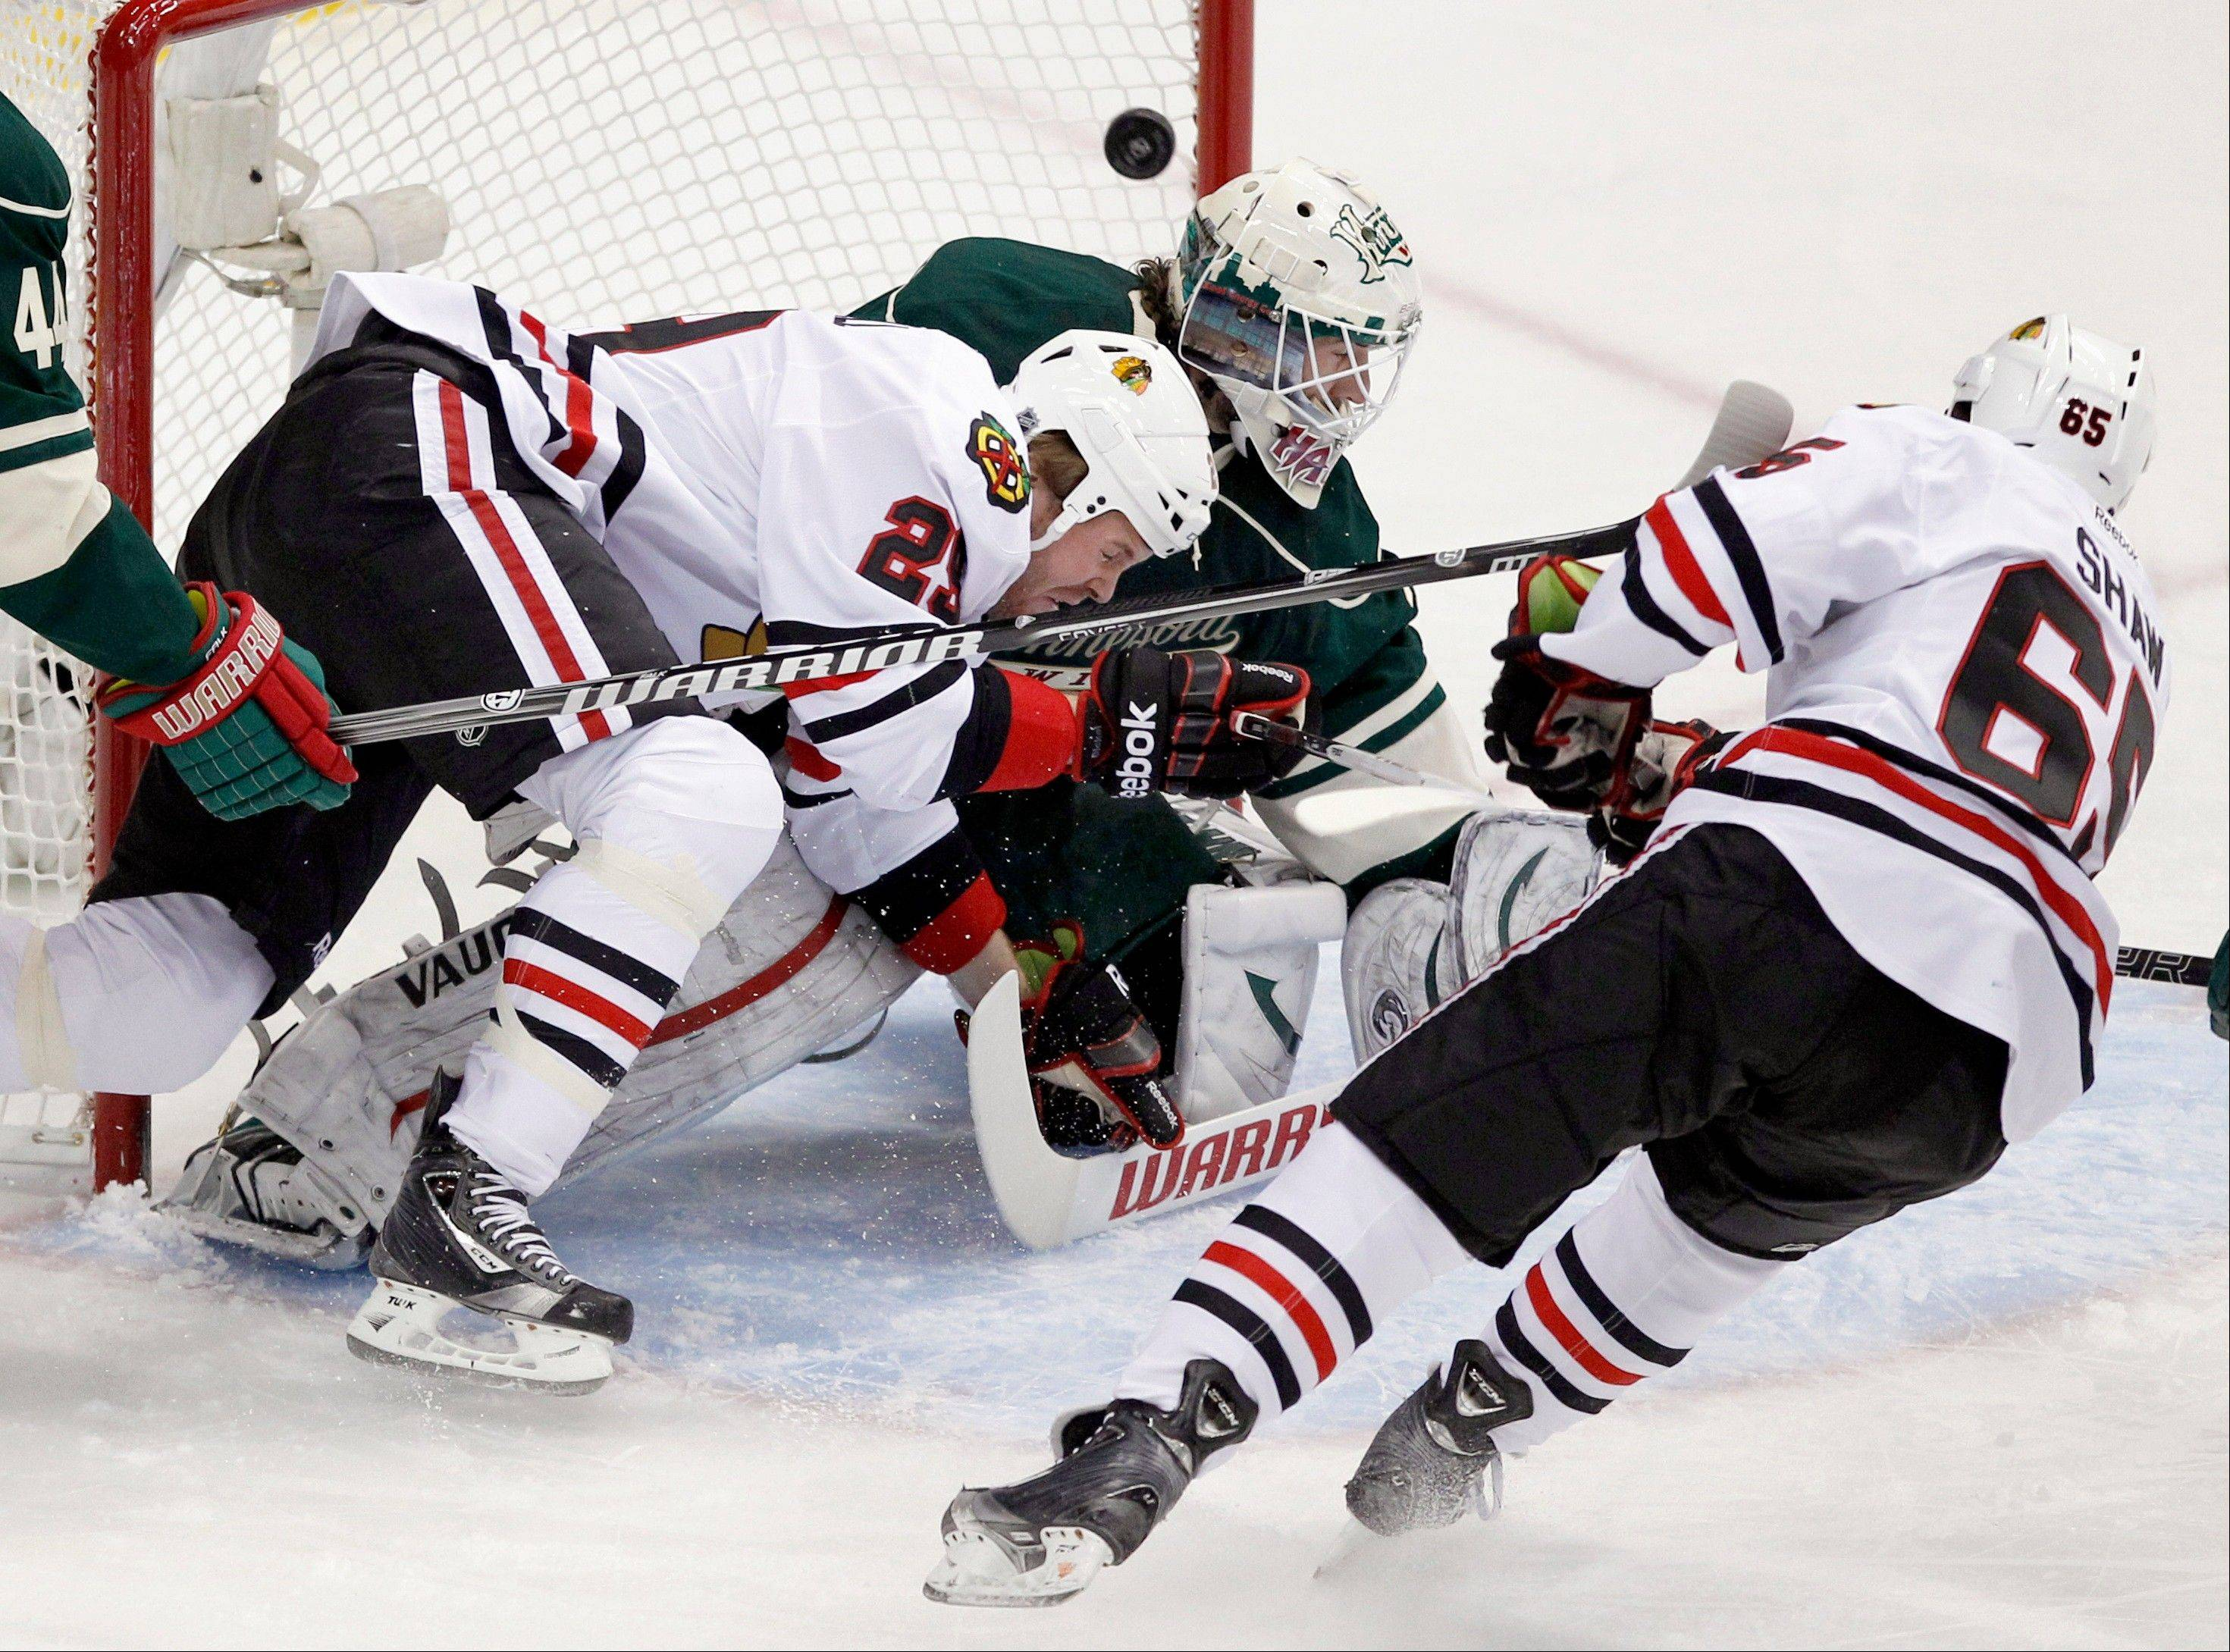 After six straight wins to open the season, the Blackhawks were beaten 3-2 in a shootout by Minnesota. Center Andrew Shaw (65) scored on this play in the Jan. 30 game at St. Paul, Minn. The Hawks salvaged a point, though, to continue their streak of unbeaten games in regulation.